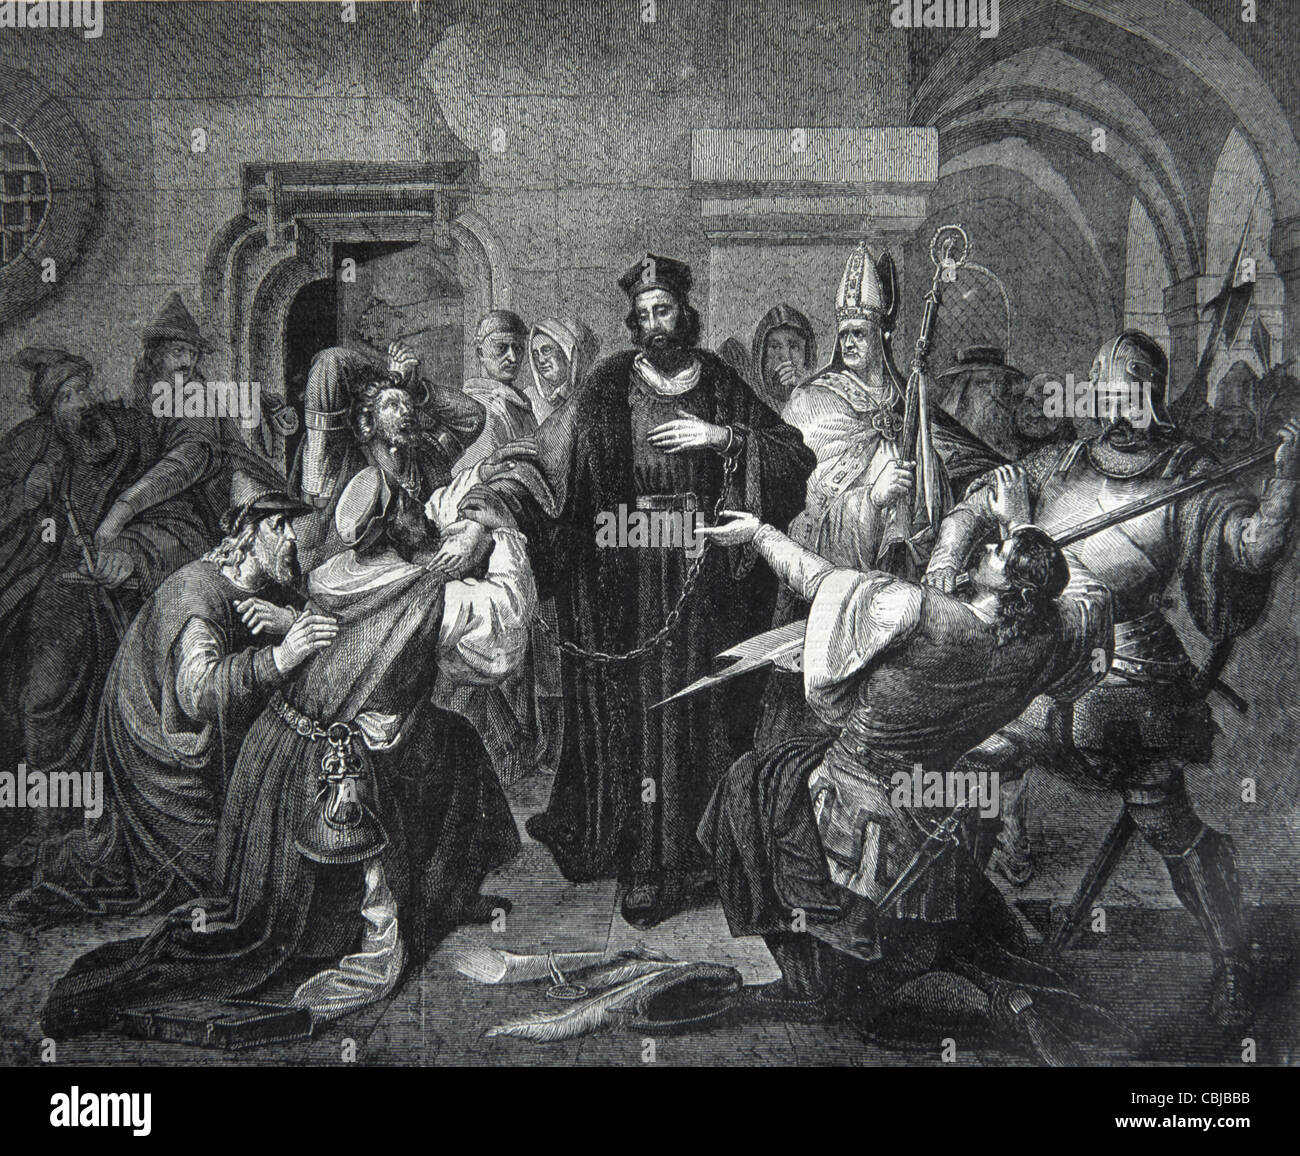 Jan Hus, John Hus or Huss (c1369-1415) Czech Priest & Church Reformer Refusing to Reject His Religious Doctrines, - Stock Image